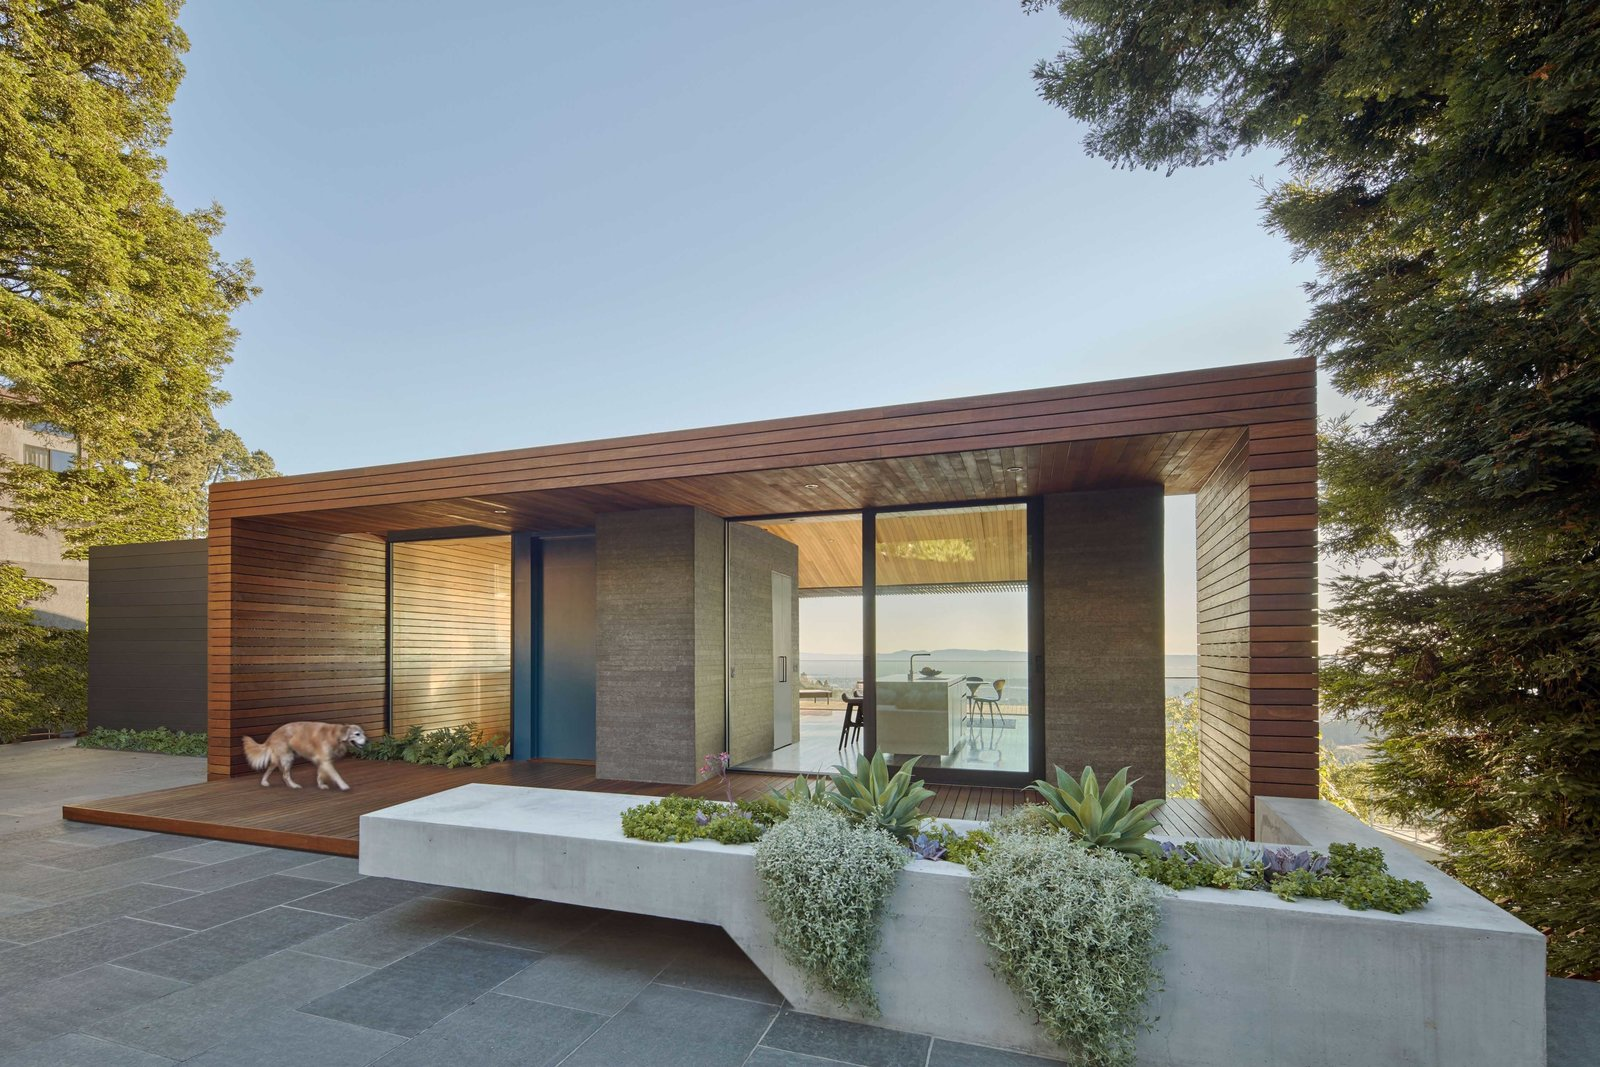 Front outdoor area Tagged: Outdoor, Front Yard, Shrubs, Trees, Hardscapes, Grass, Small Patio, Porch, Deck, Gardens, Raised Planters, Landscape Lighting, and Metal Fences, Wall.  Skyline House by Terry & Terry Architecture